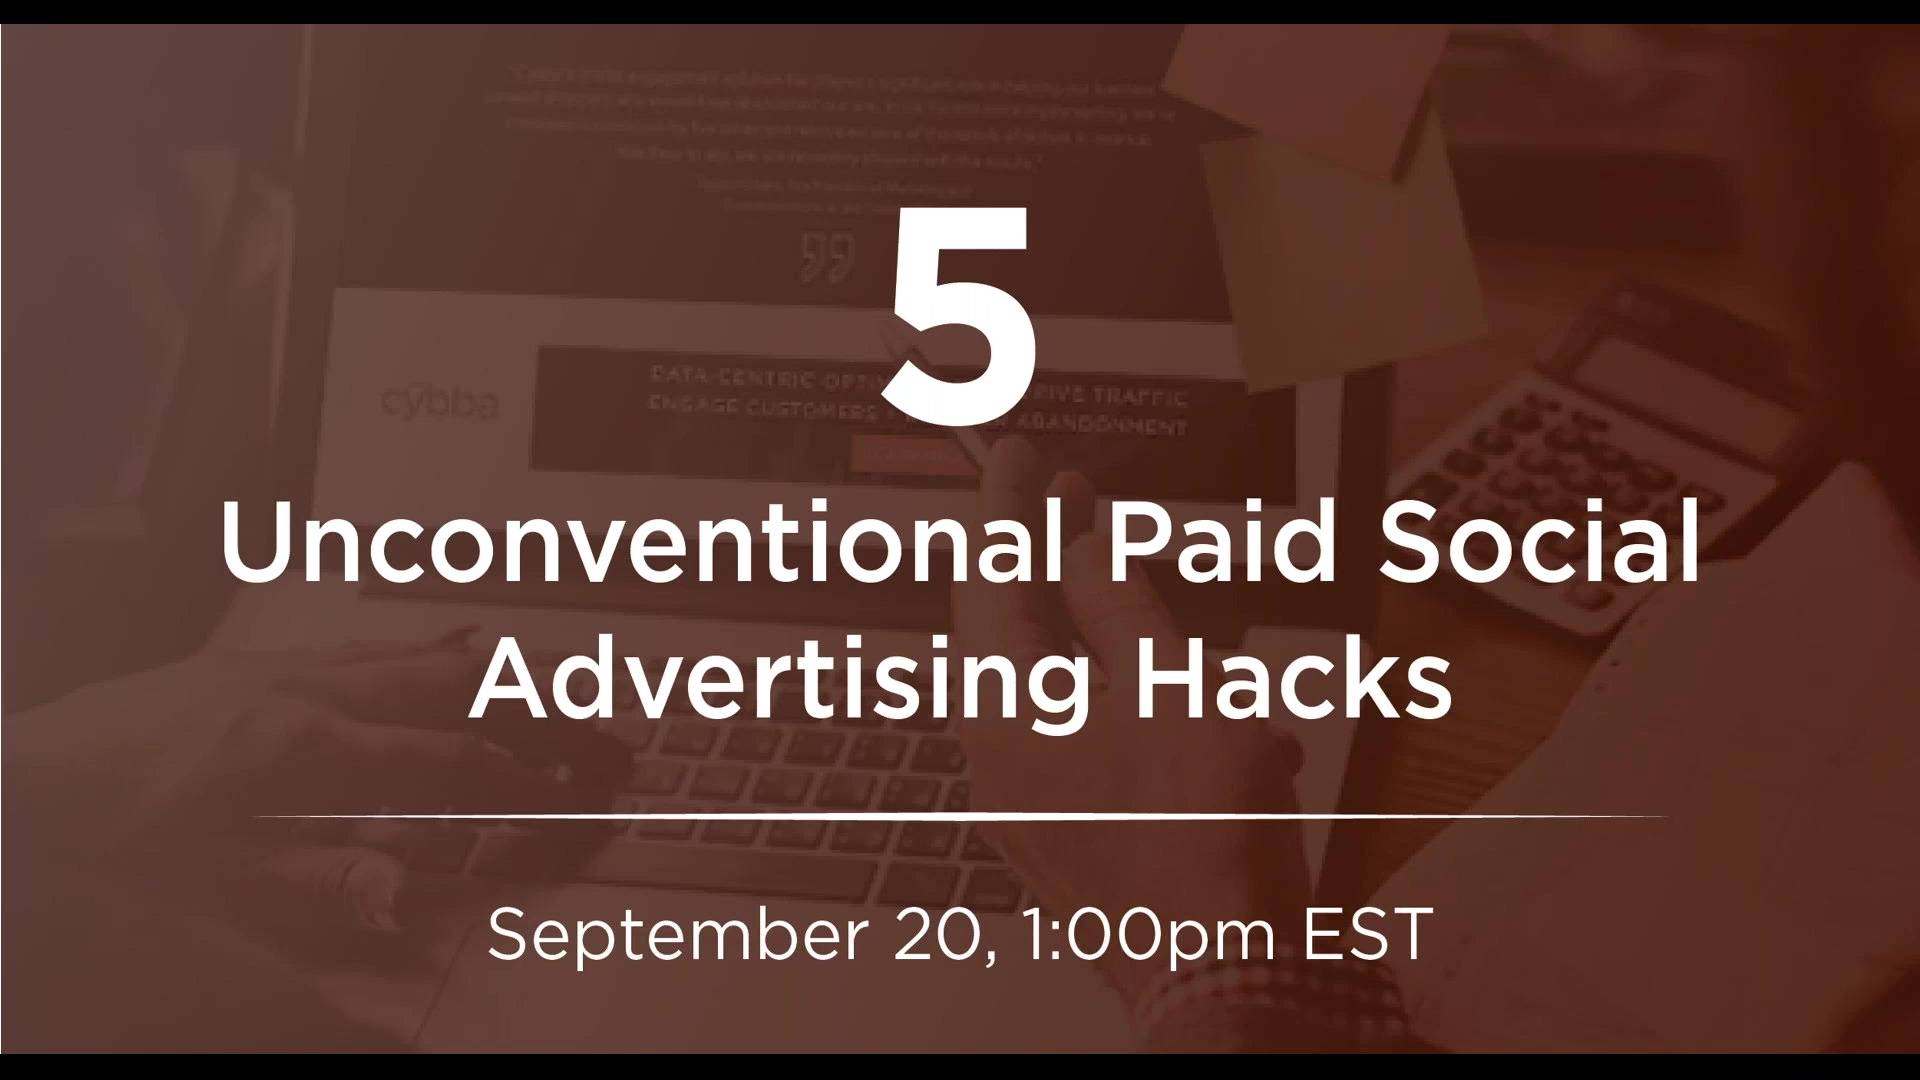 5 Unconventional Paid Social Advertising Hacks (1)